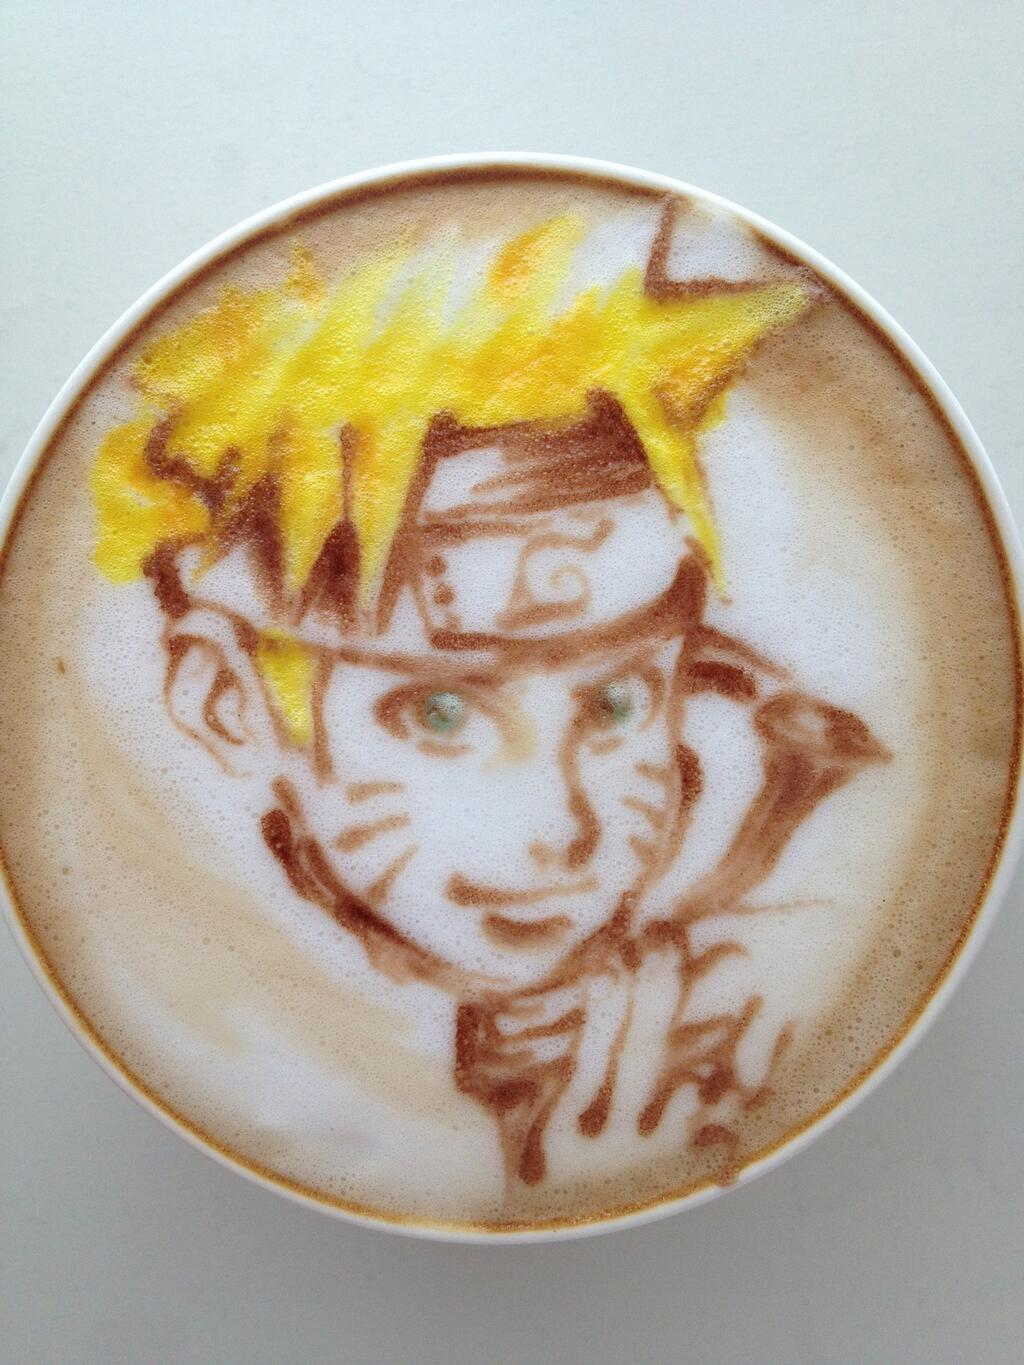 Japanese Latte Artist Puts Anime Characters In Coffee  Fanboycom